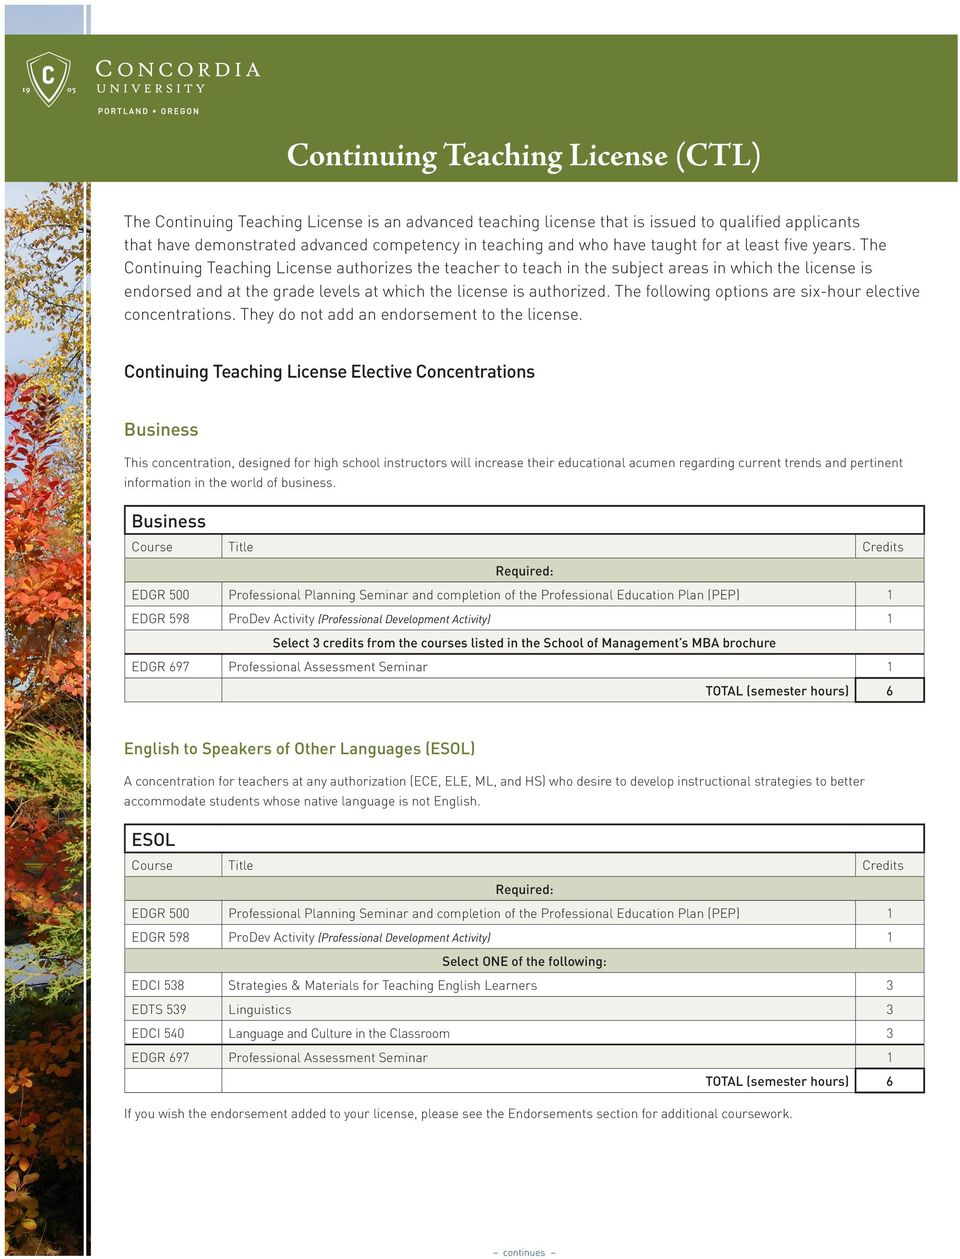 The Continuing Teaching License authorizes the teacher to teach in the subject areas in which the license is endorsed and at the grade levels at which the license is authorized.